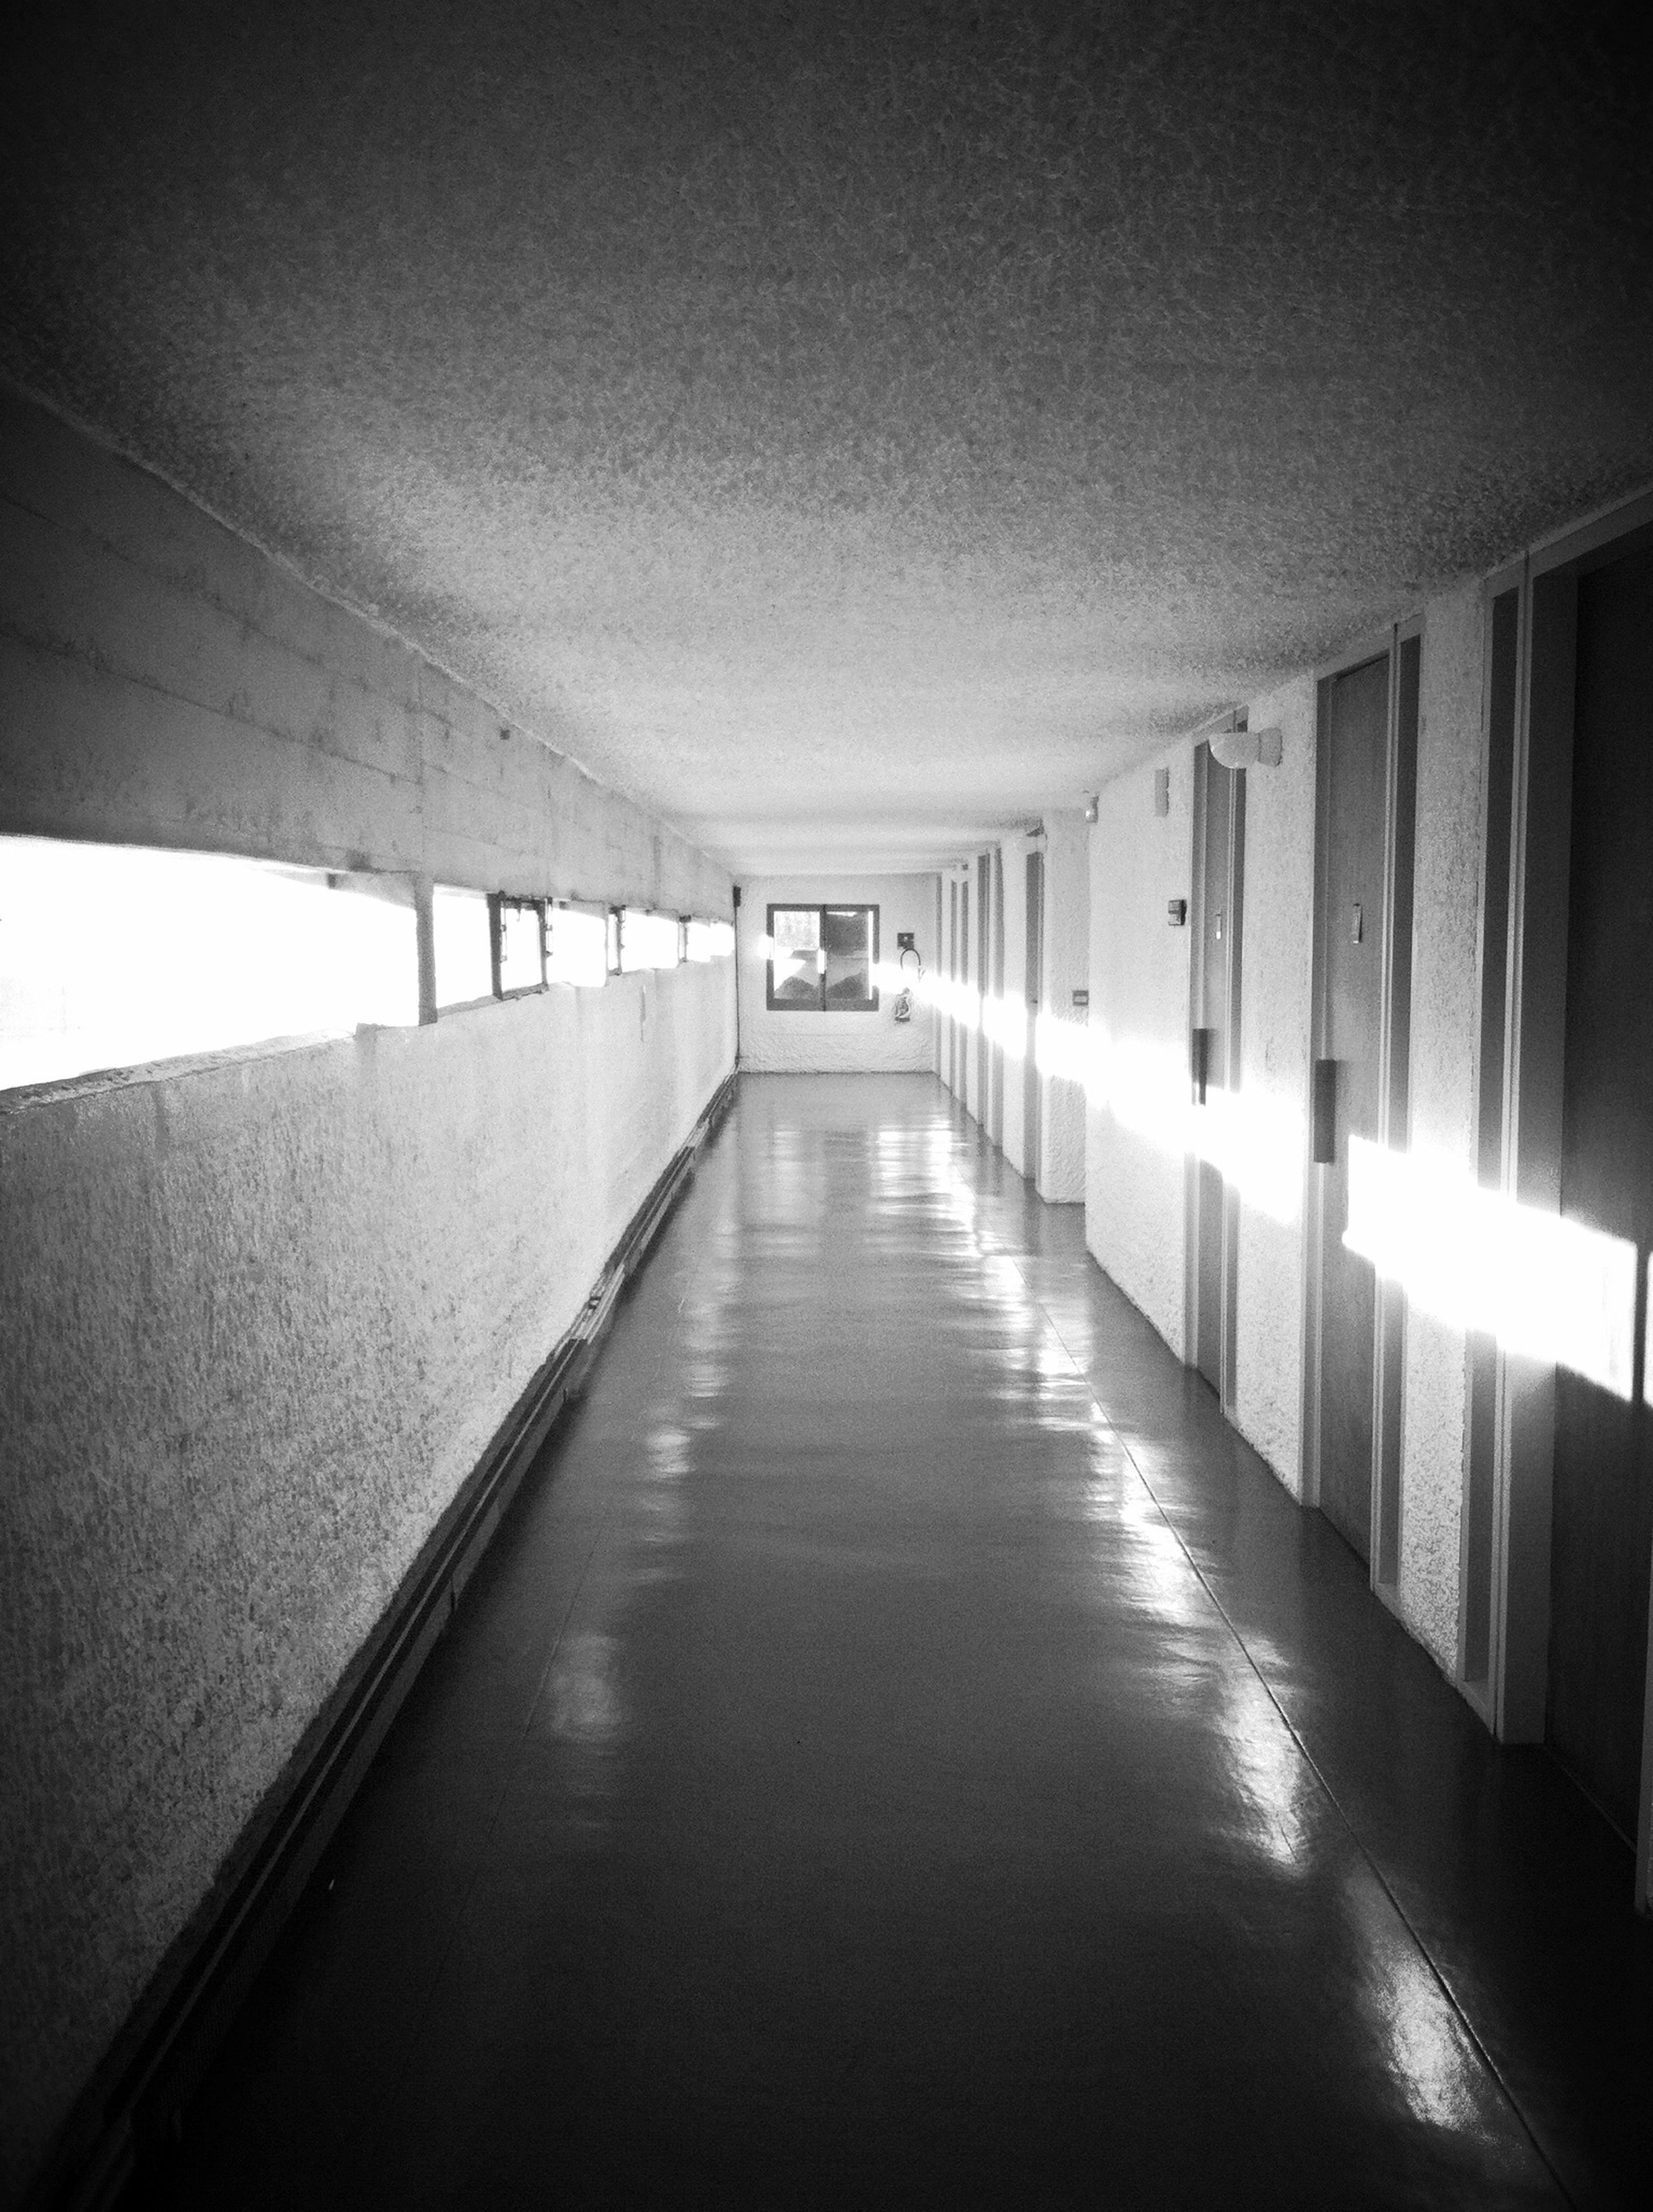 the way forward, architecture, built structure, indoors, diminishing perspective, corridor, ceiling, empty, vanishing point, narrow, long, absence, illuminated, building, in a row, flooring, walkway, wall - building feature, lighting equipment, no people